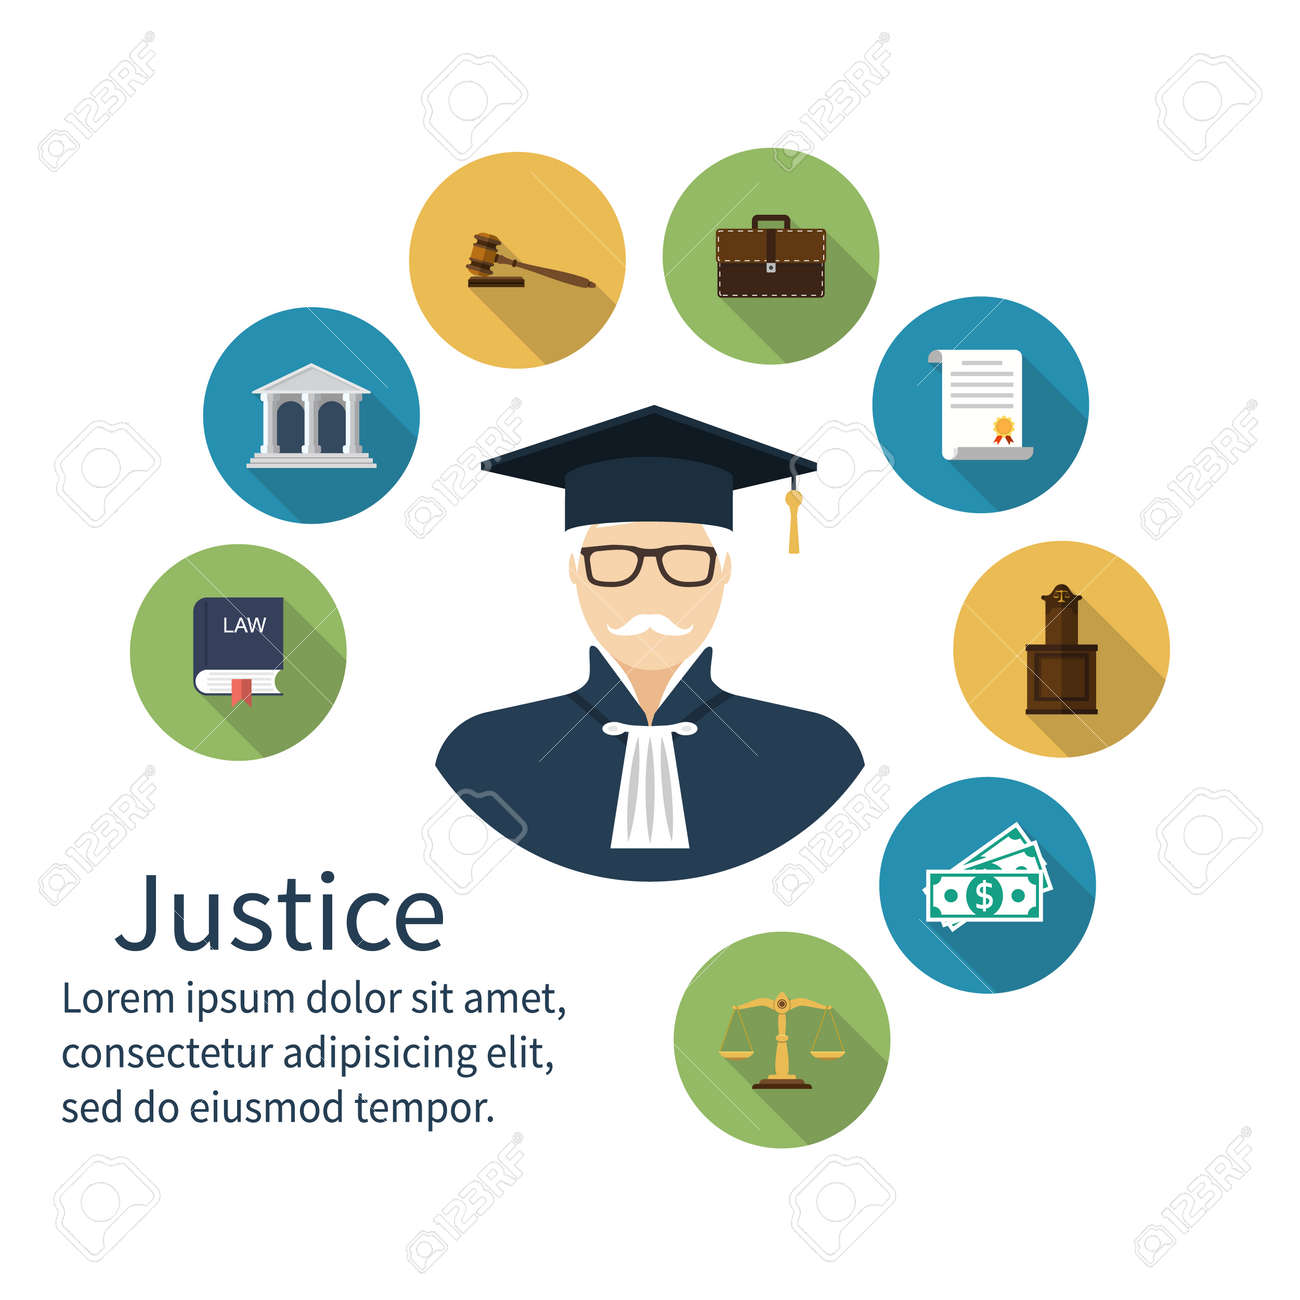 Judge Icon Icons Symbol Of Law And Justice Concept Law Trial Law